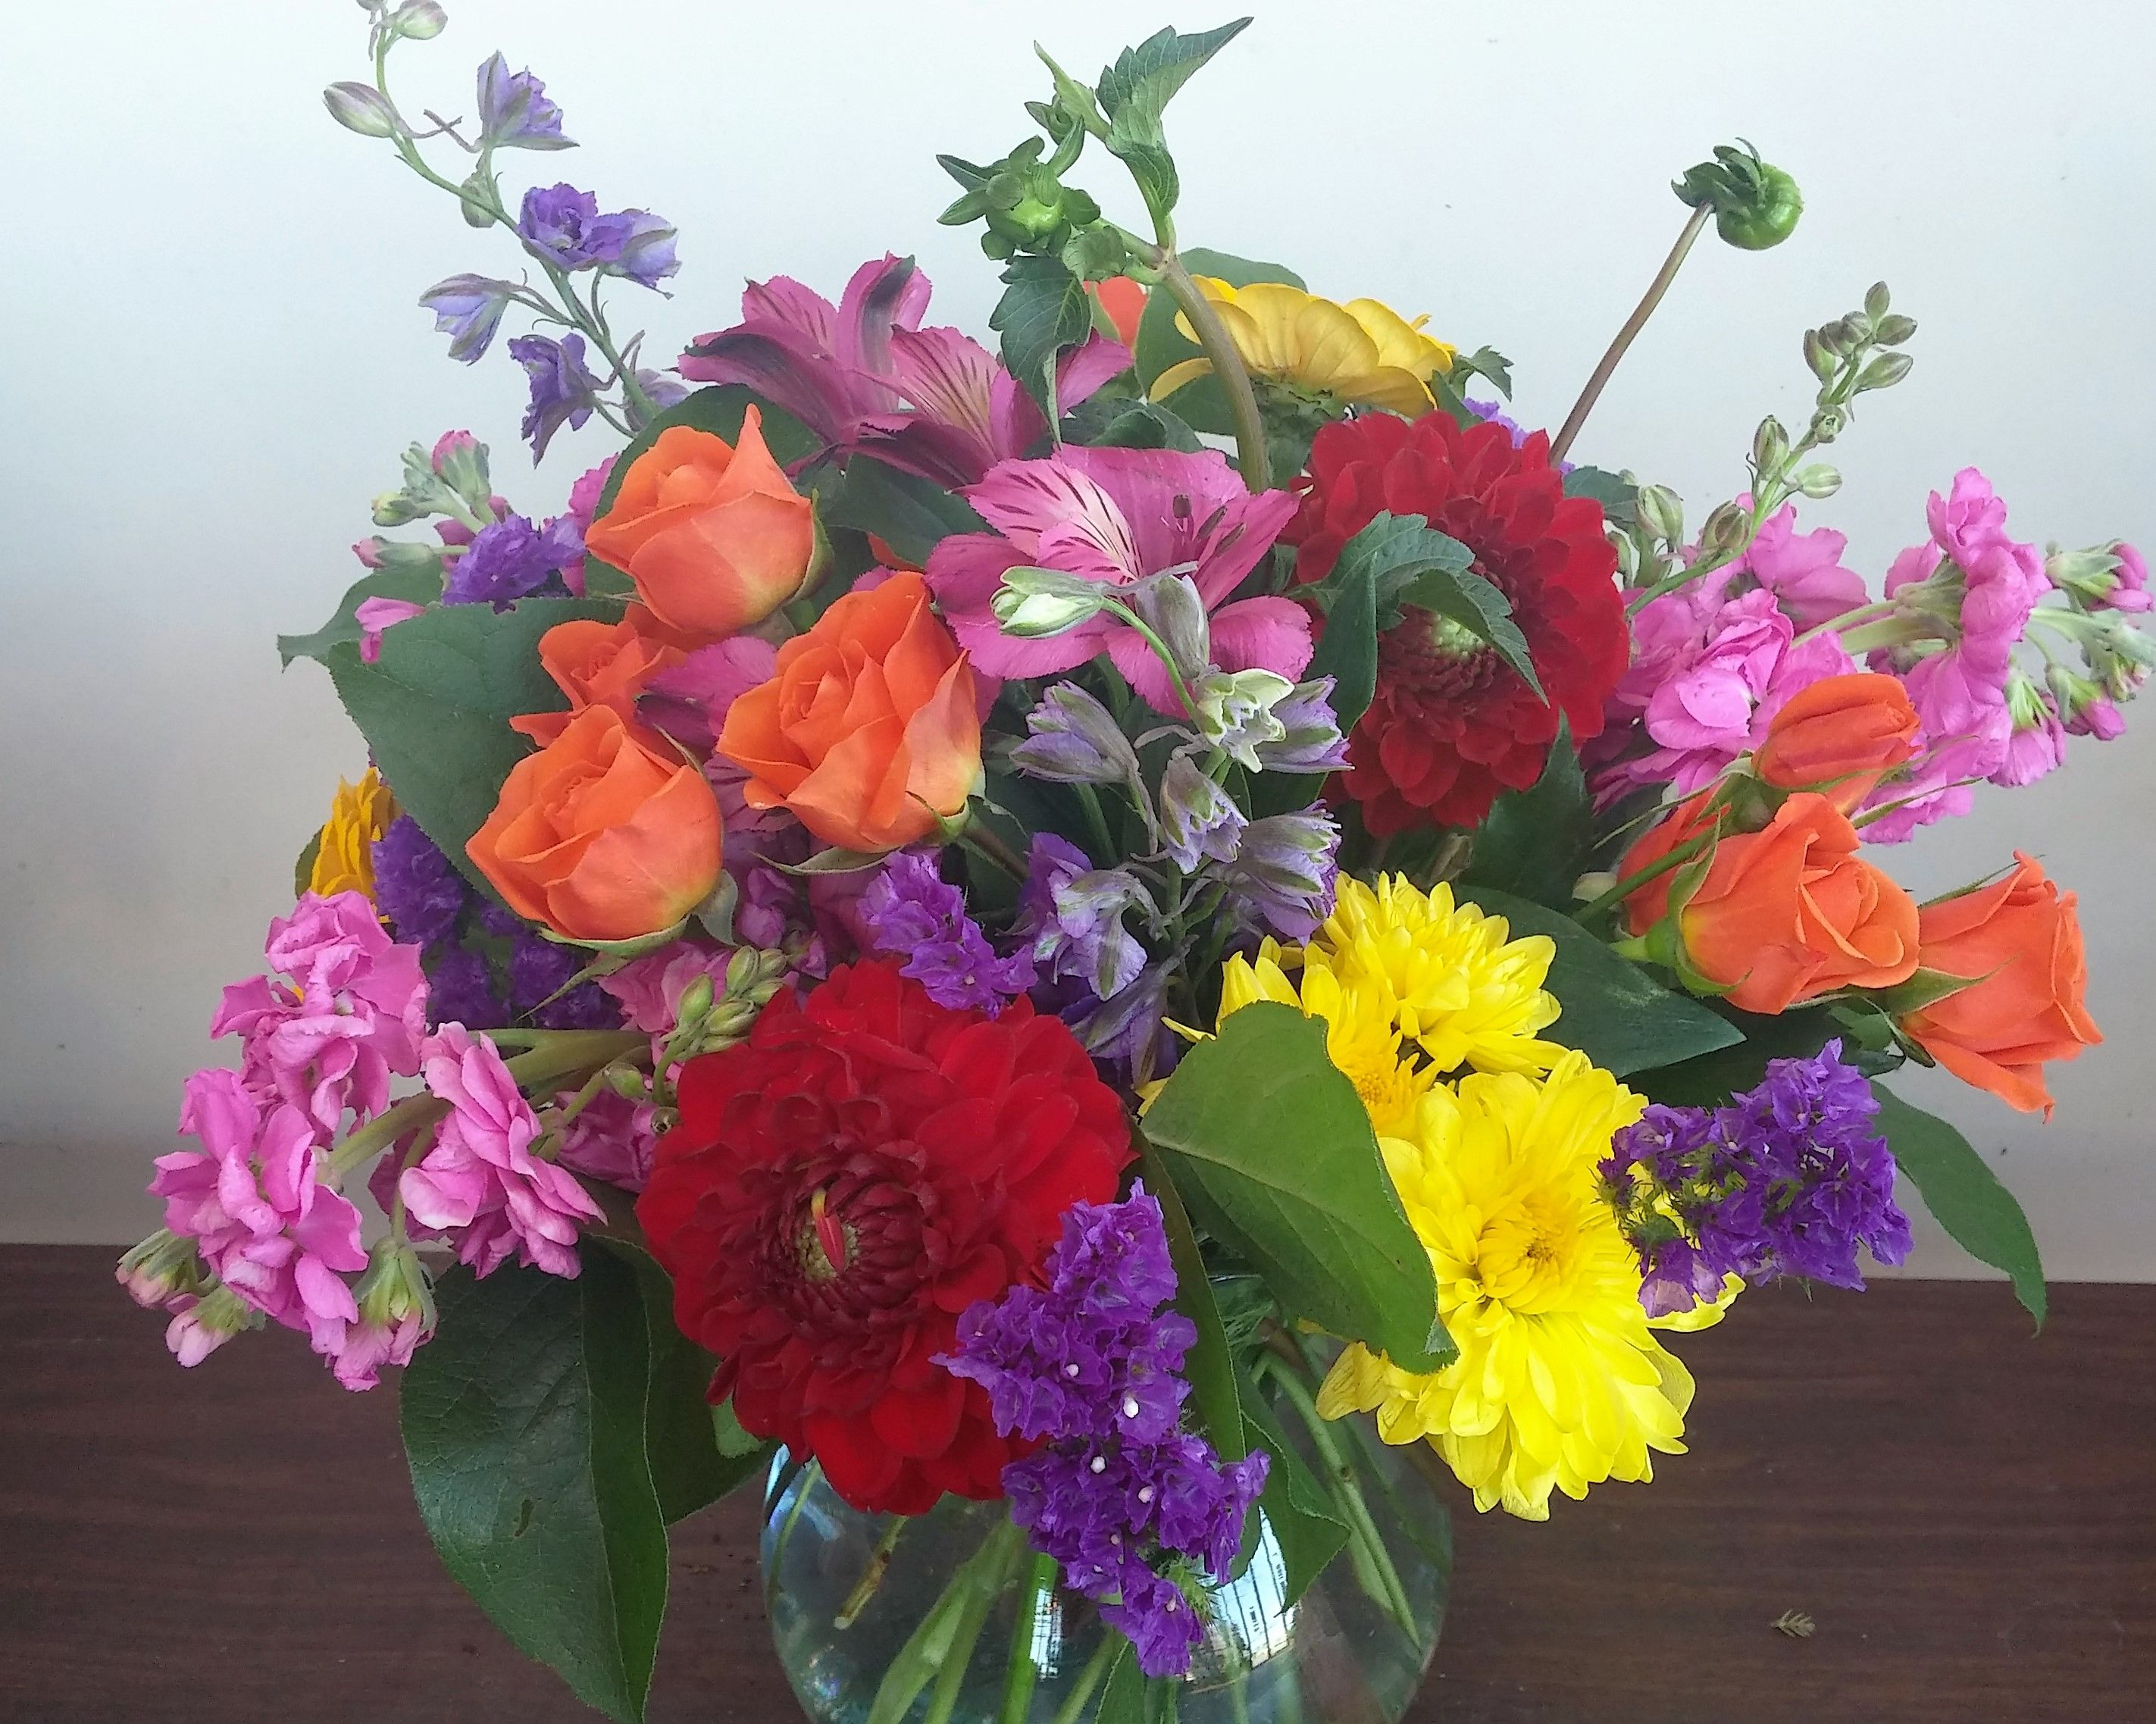 Bright colorful mix of flowers. Perfect to brighten someones day ...